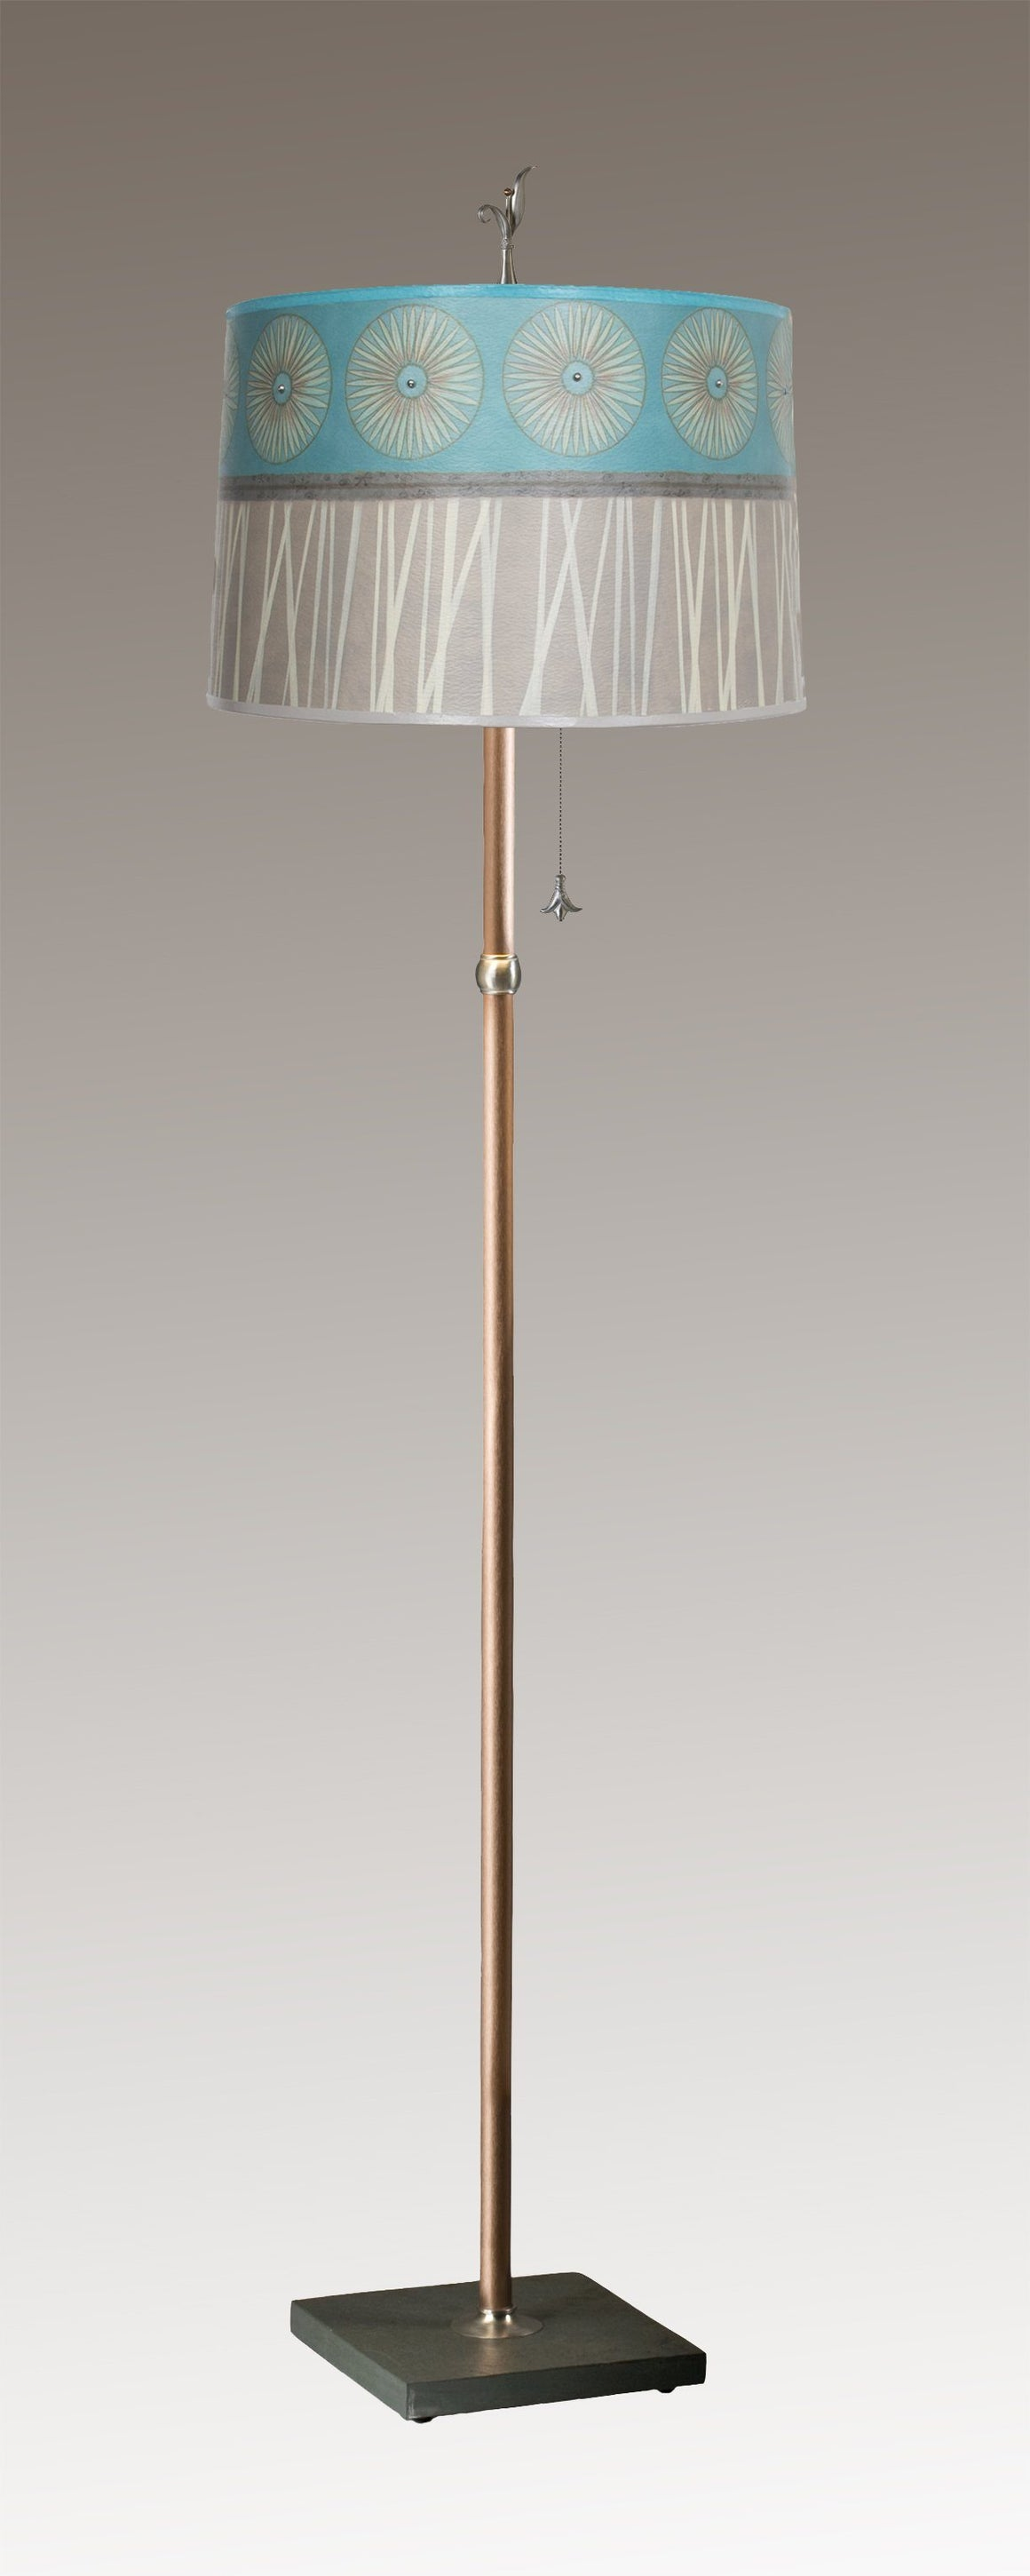 Copper Floor Lamp on Vermont Slate with Large Drum Shade in Pool